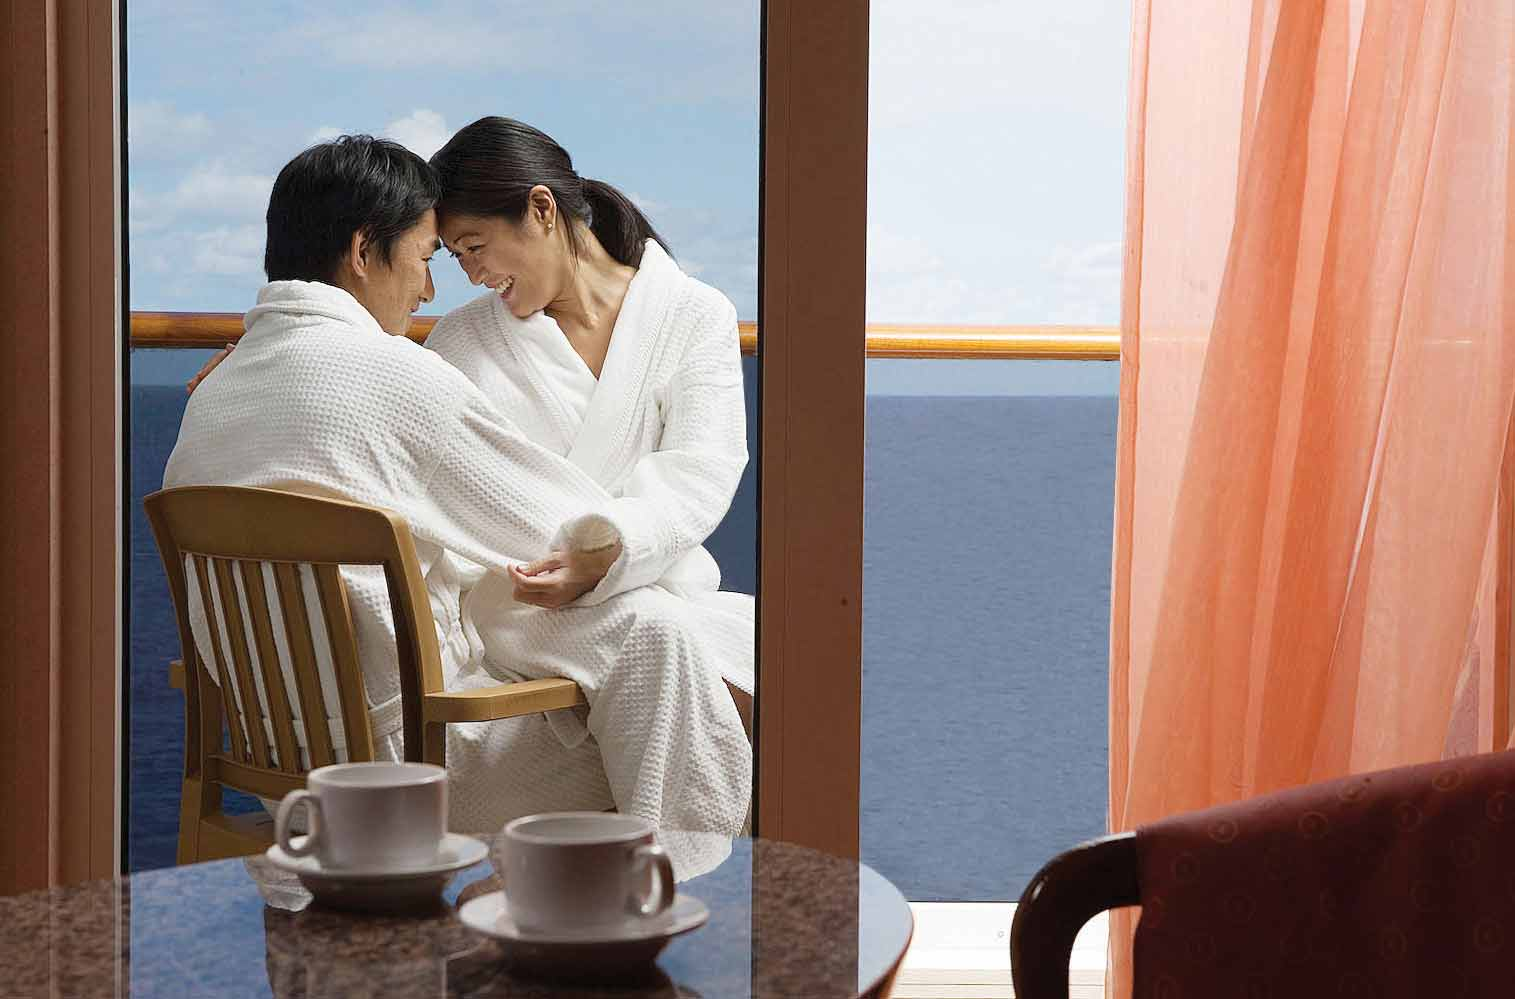 couple on a stateroom balcony in robes